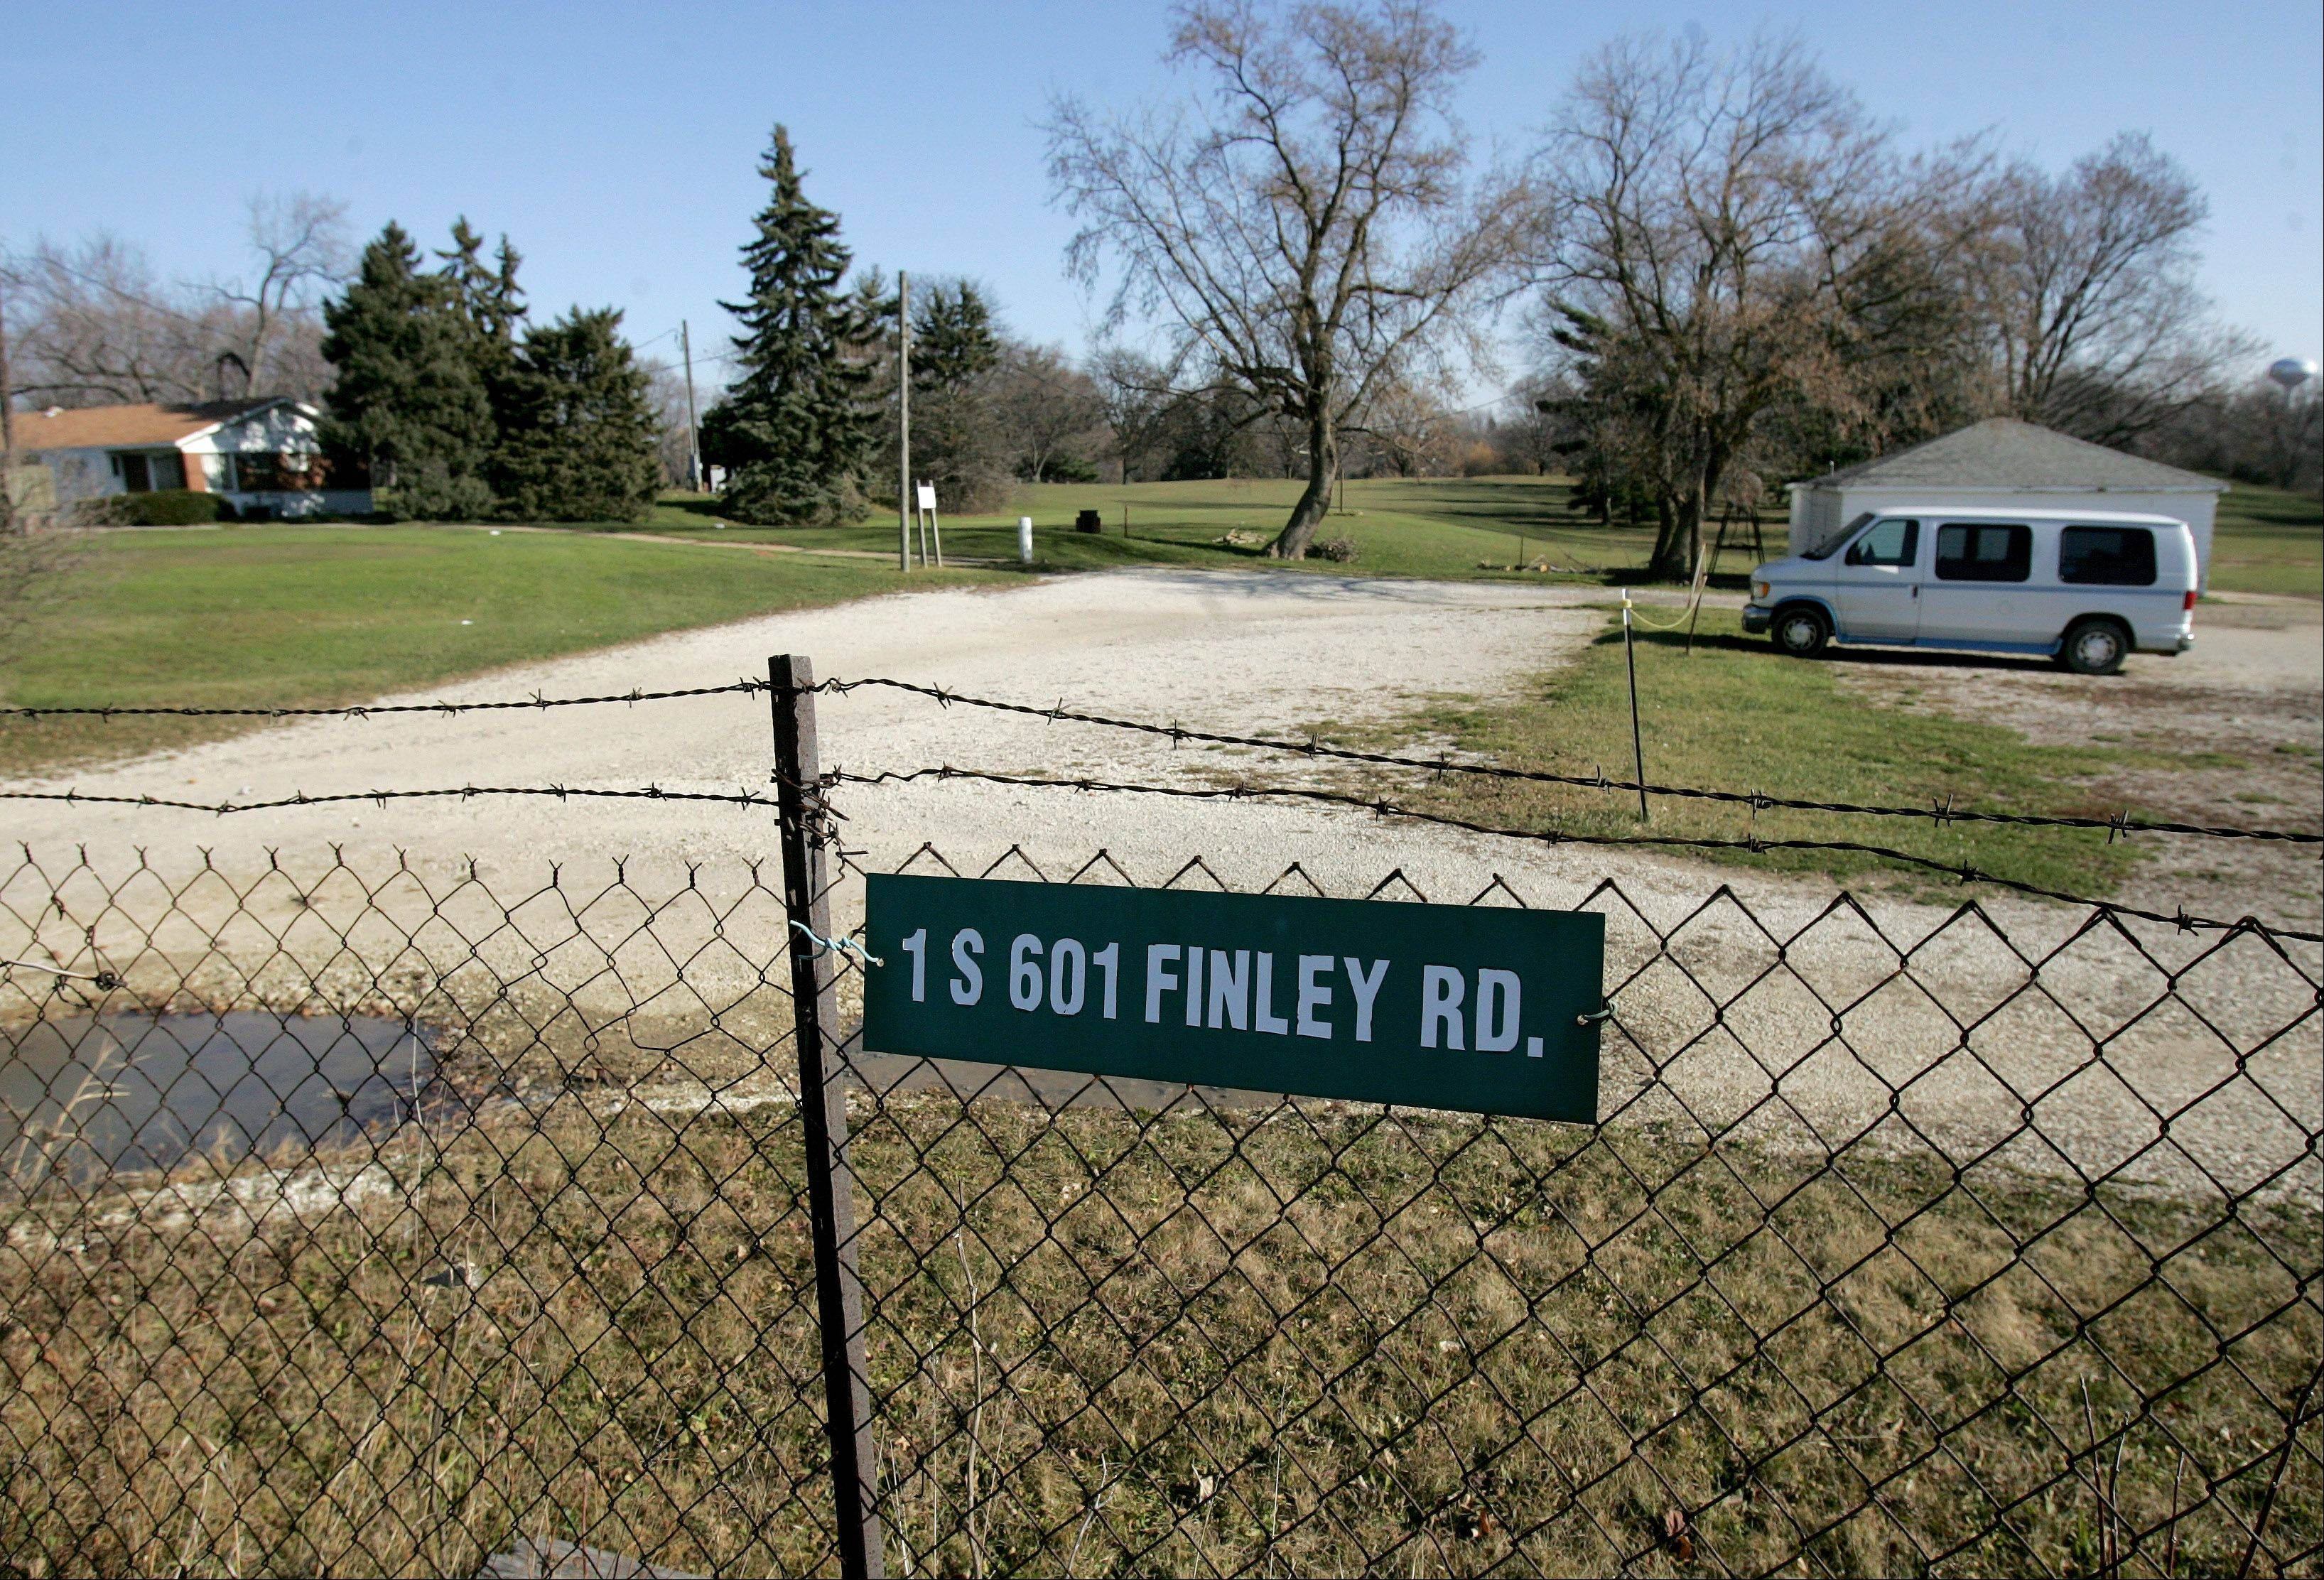 The Ken-Loch golf links property along Finley Road in an unincorporated area near Lombard is for sale, and a developer looking to buy it wants to build apartments and for-sale units. Land use discussions are ongoing at the Lombard plan commission to consider changing the land's designation from open space to another use.